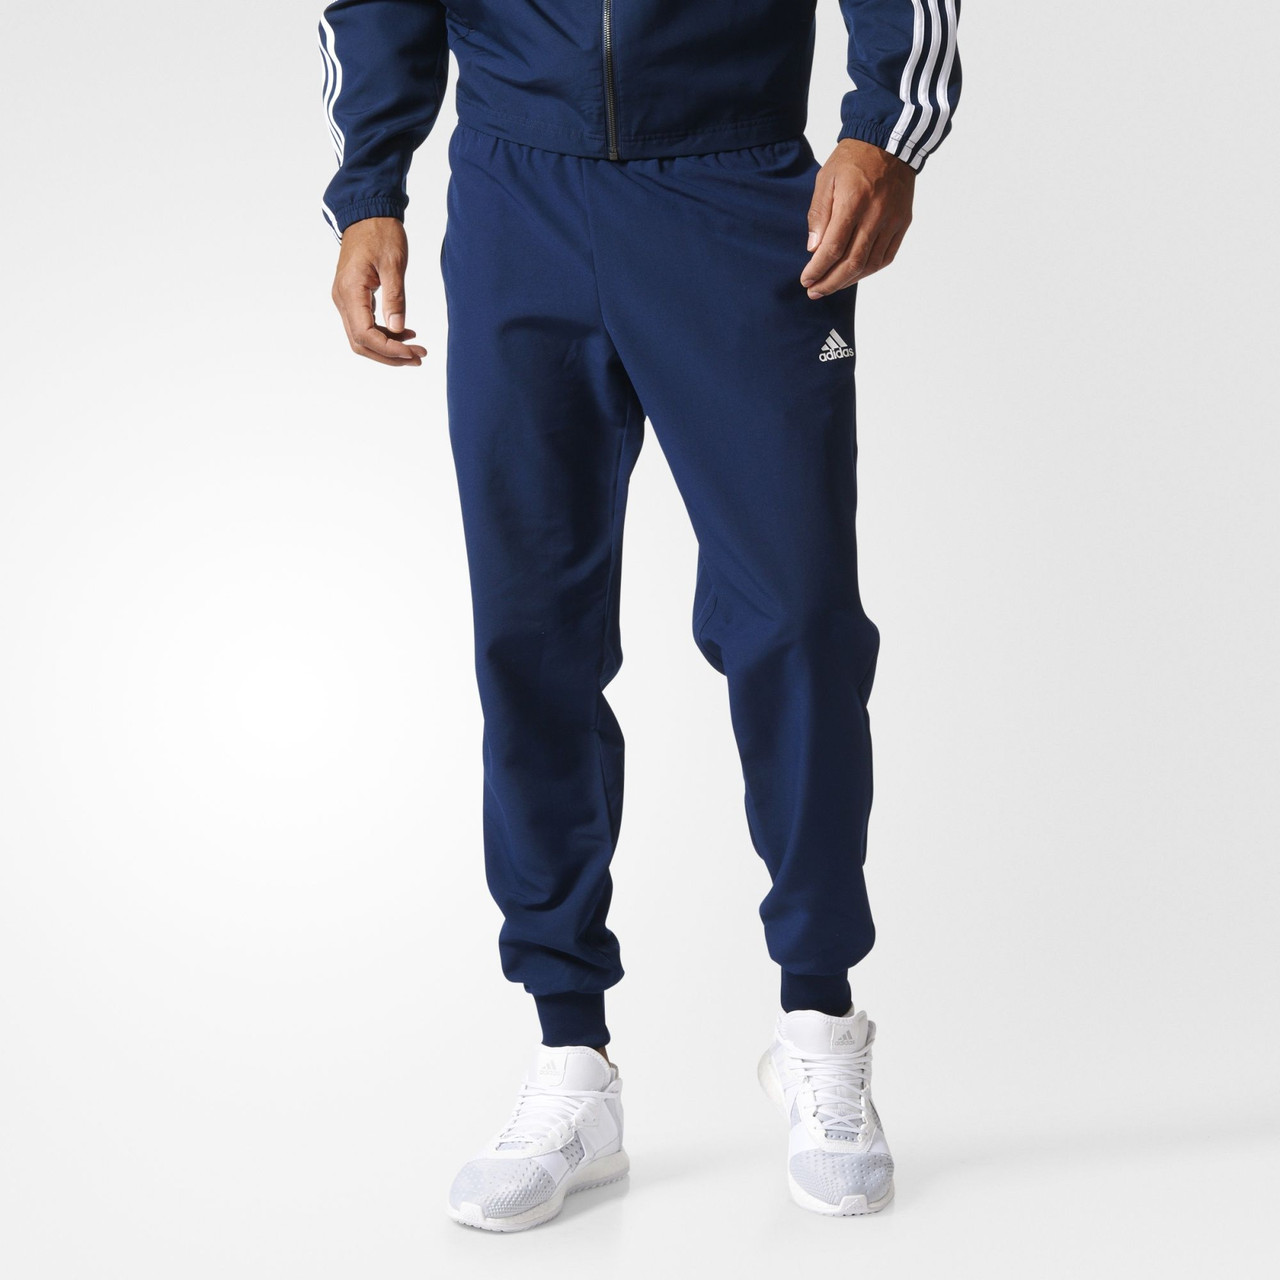 Мужские брюки Adidas Performance Essentials Stanford 2.0 (Артикул: BS2887)